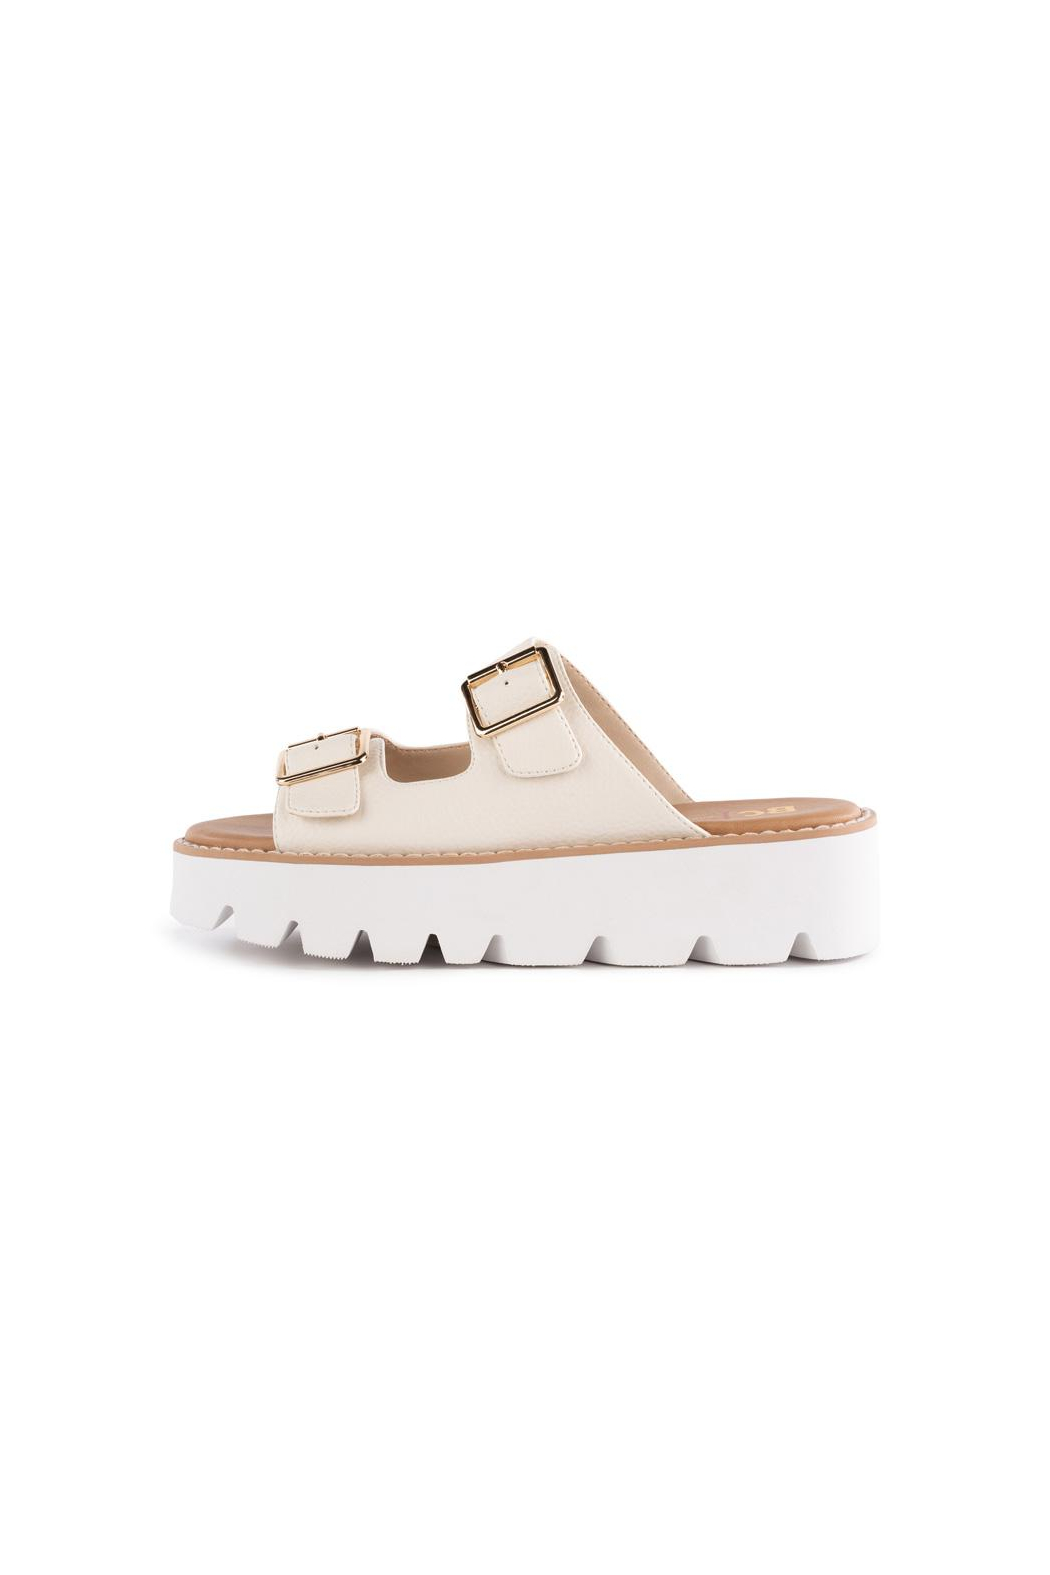 BC Footwear Hand To Hold Sandal - Main Image